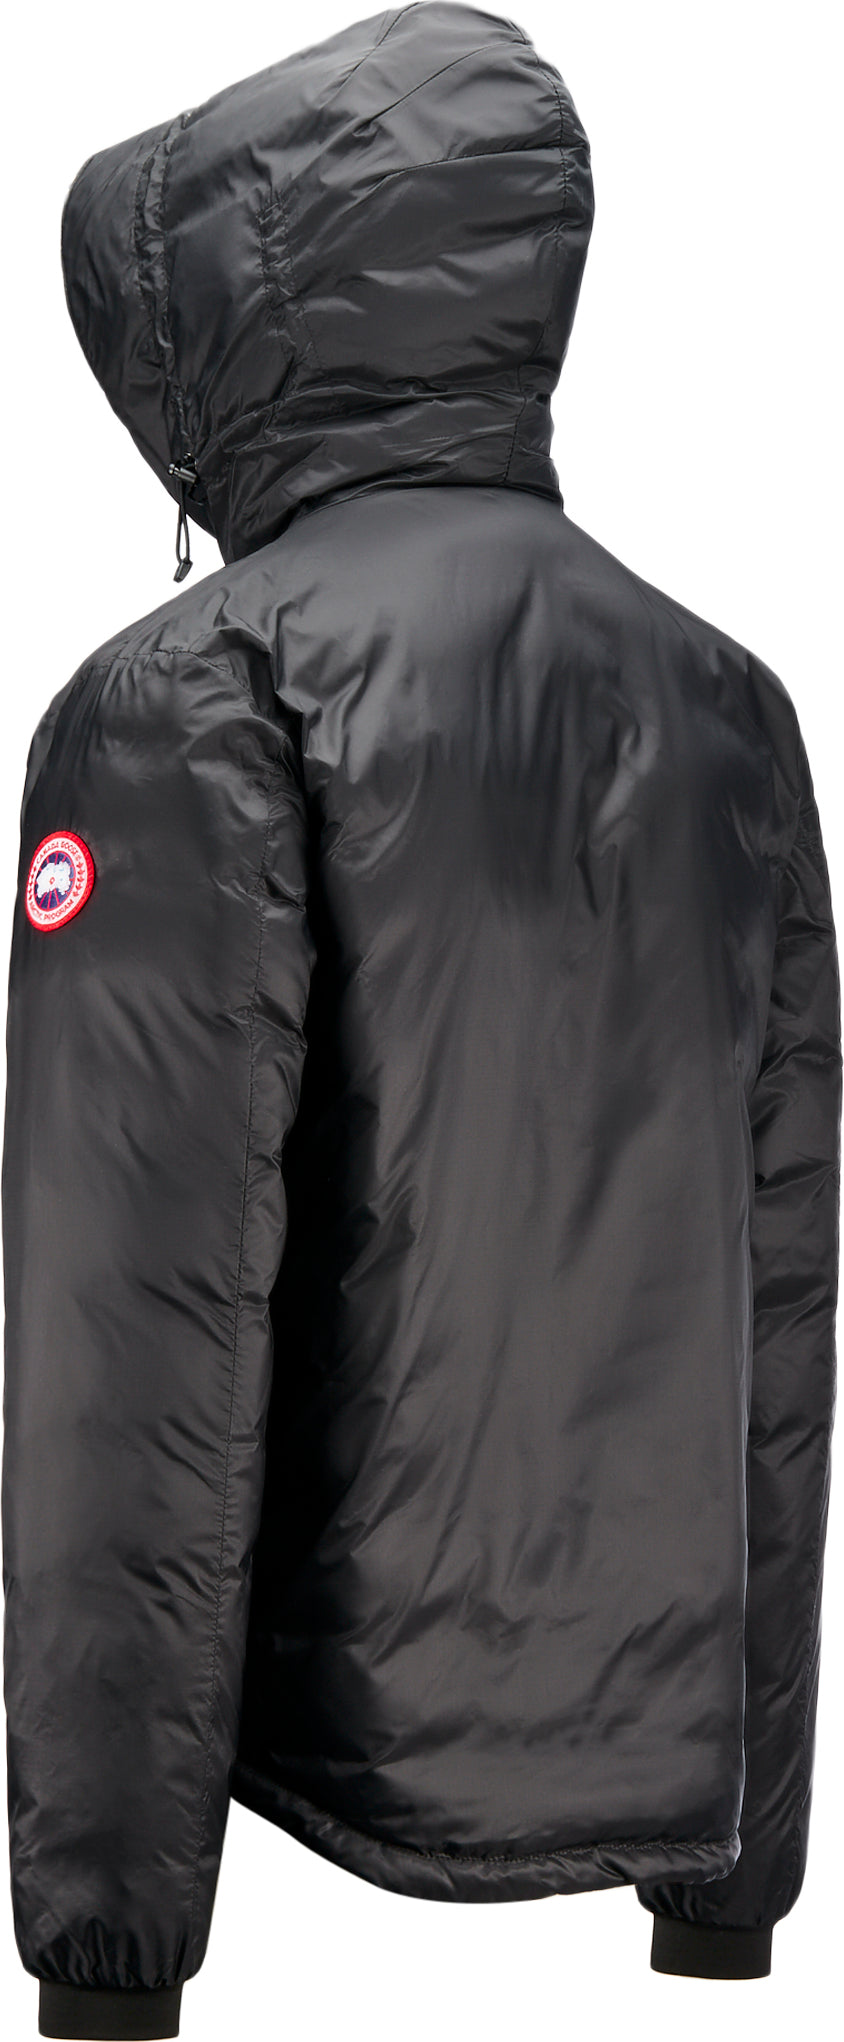 cc2d74af4c3 Canada Goose Lodge Down Hoody - Men's | Altitude Sports